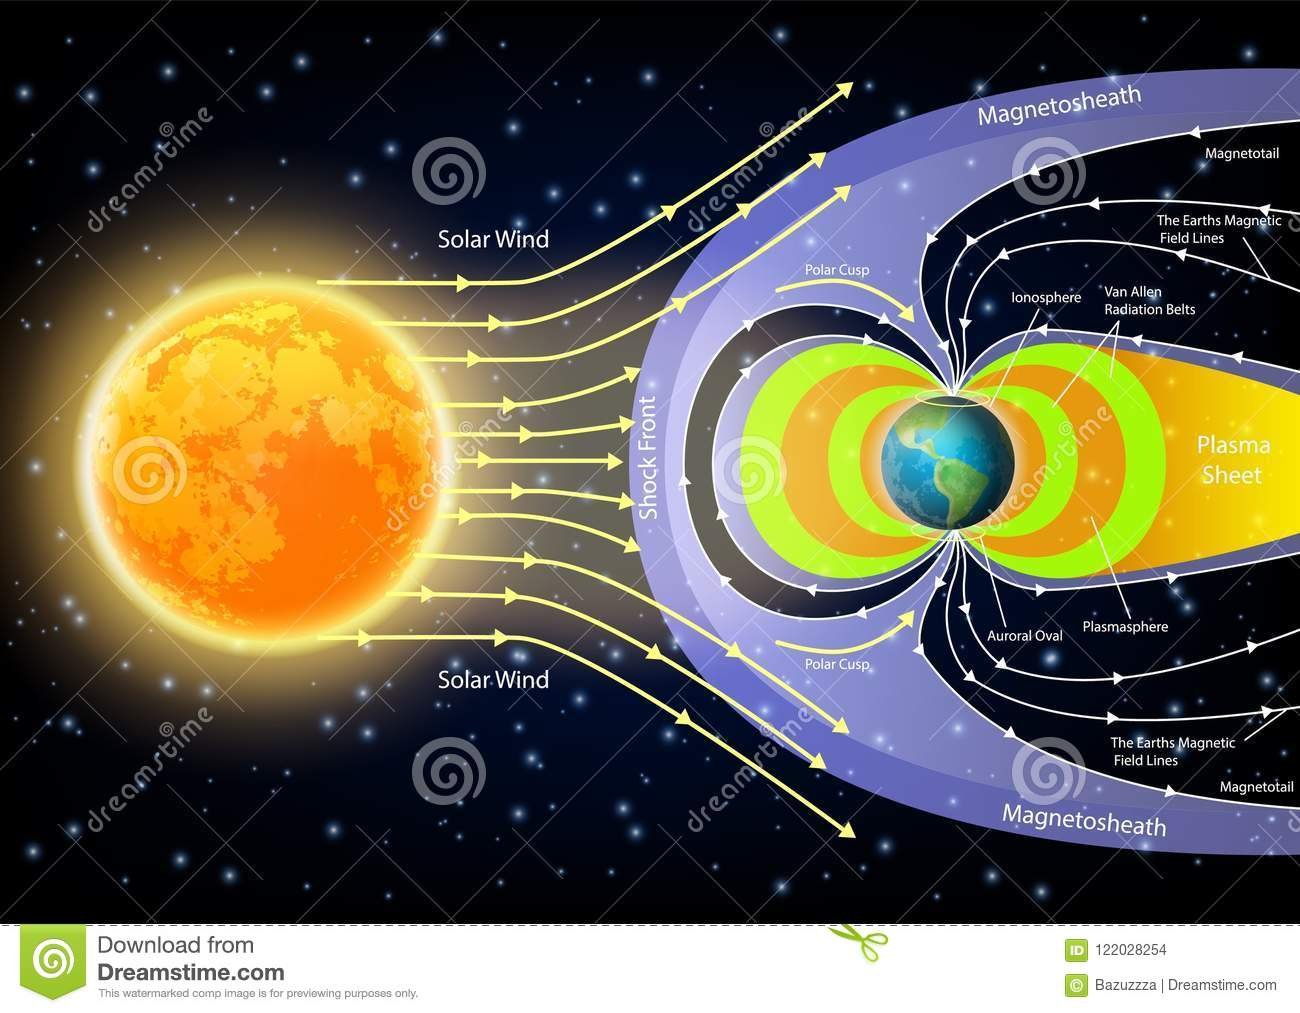 Solar Wind Diagram The Sun And Wiring Diagrams Korndrfer Autotransformer Starter Wikipedia Free Encyclopedia Related Images